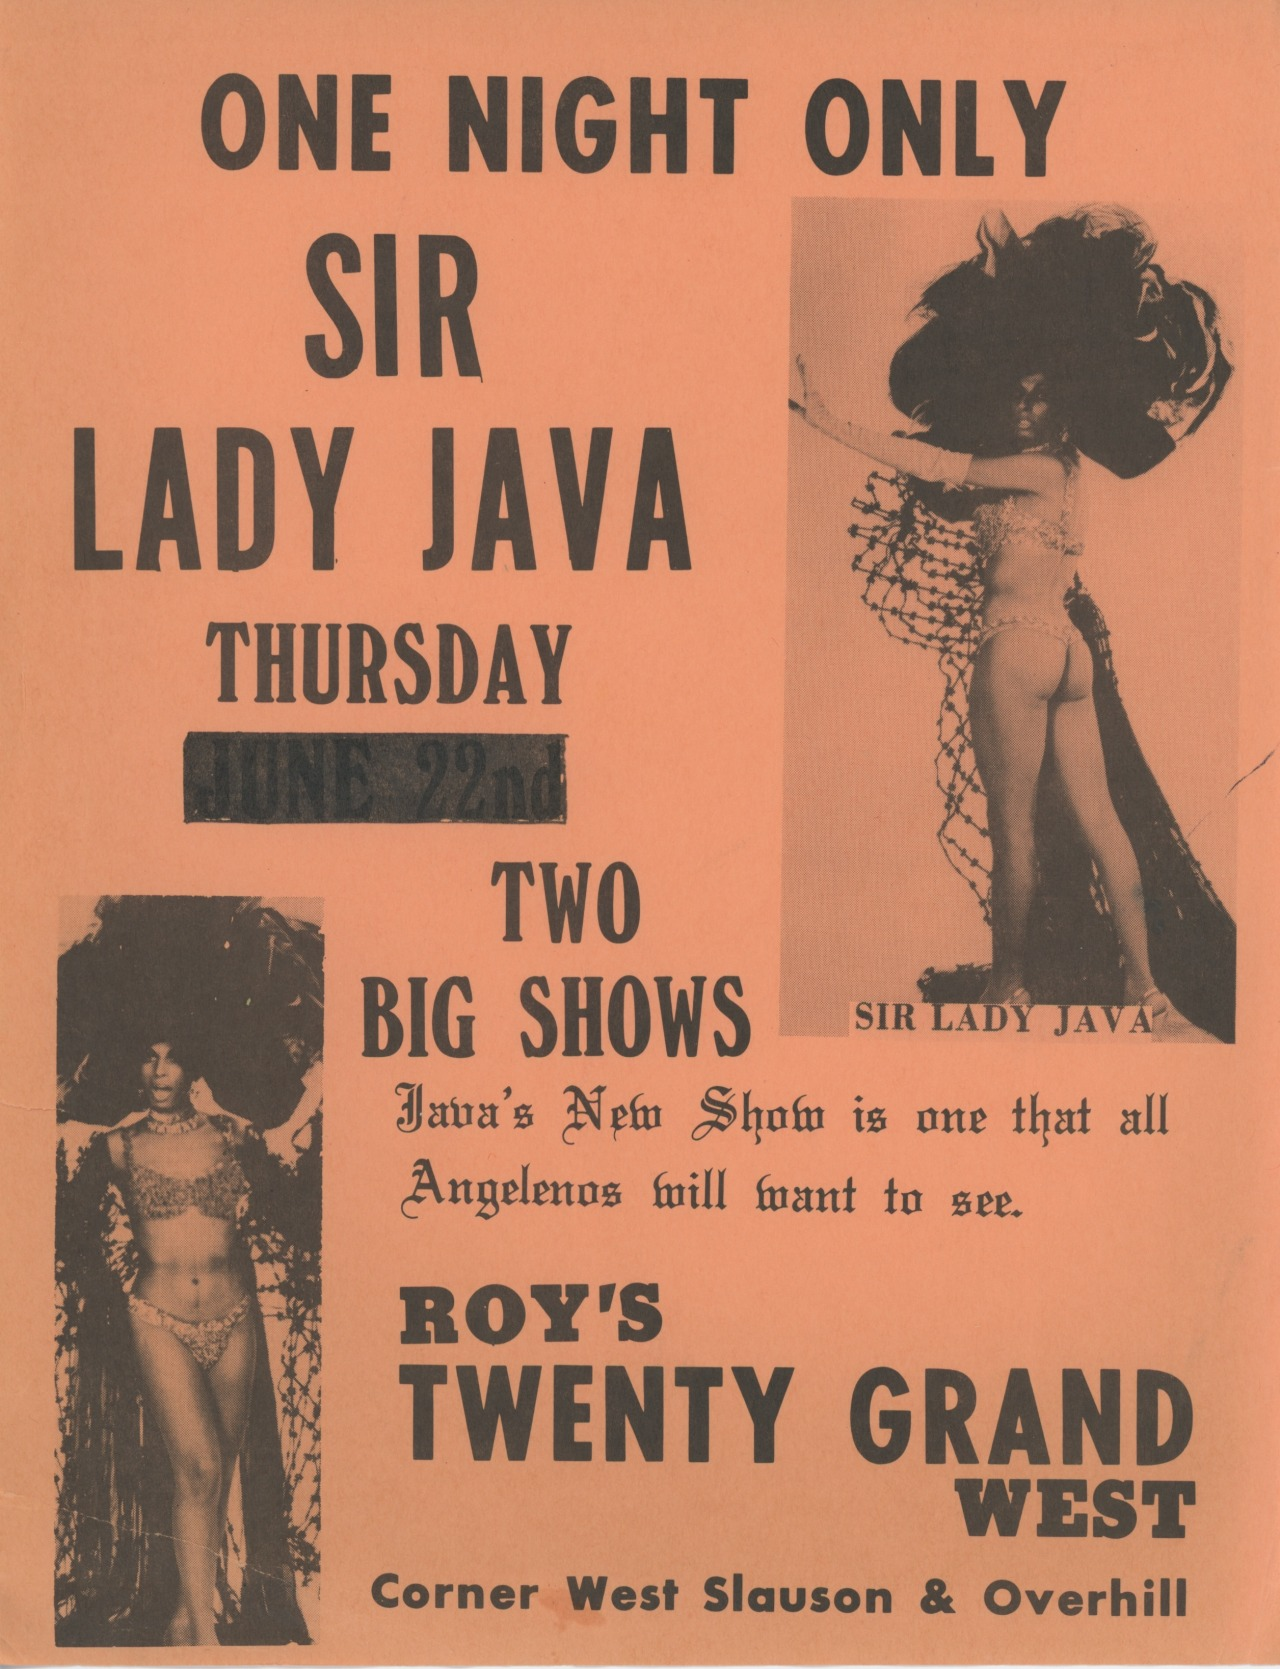 Sir Lady Java at Roy's Twenty Grand West, July 22, 1971